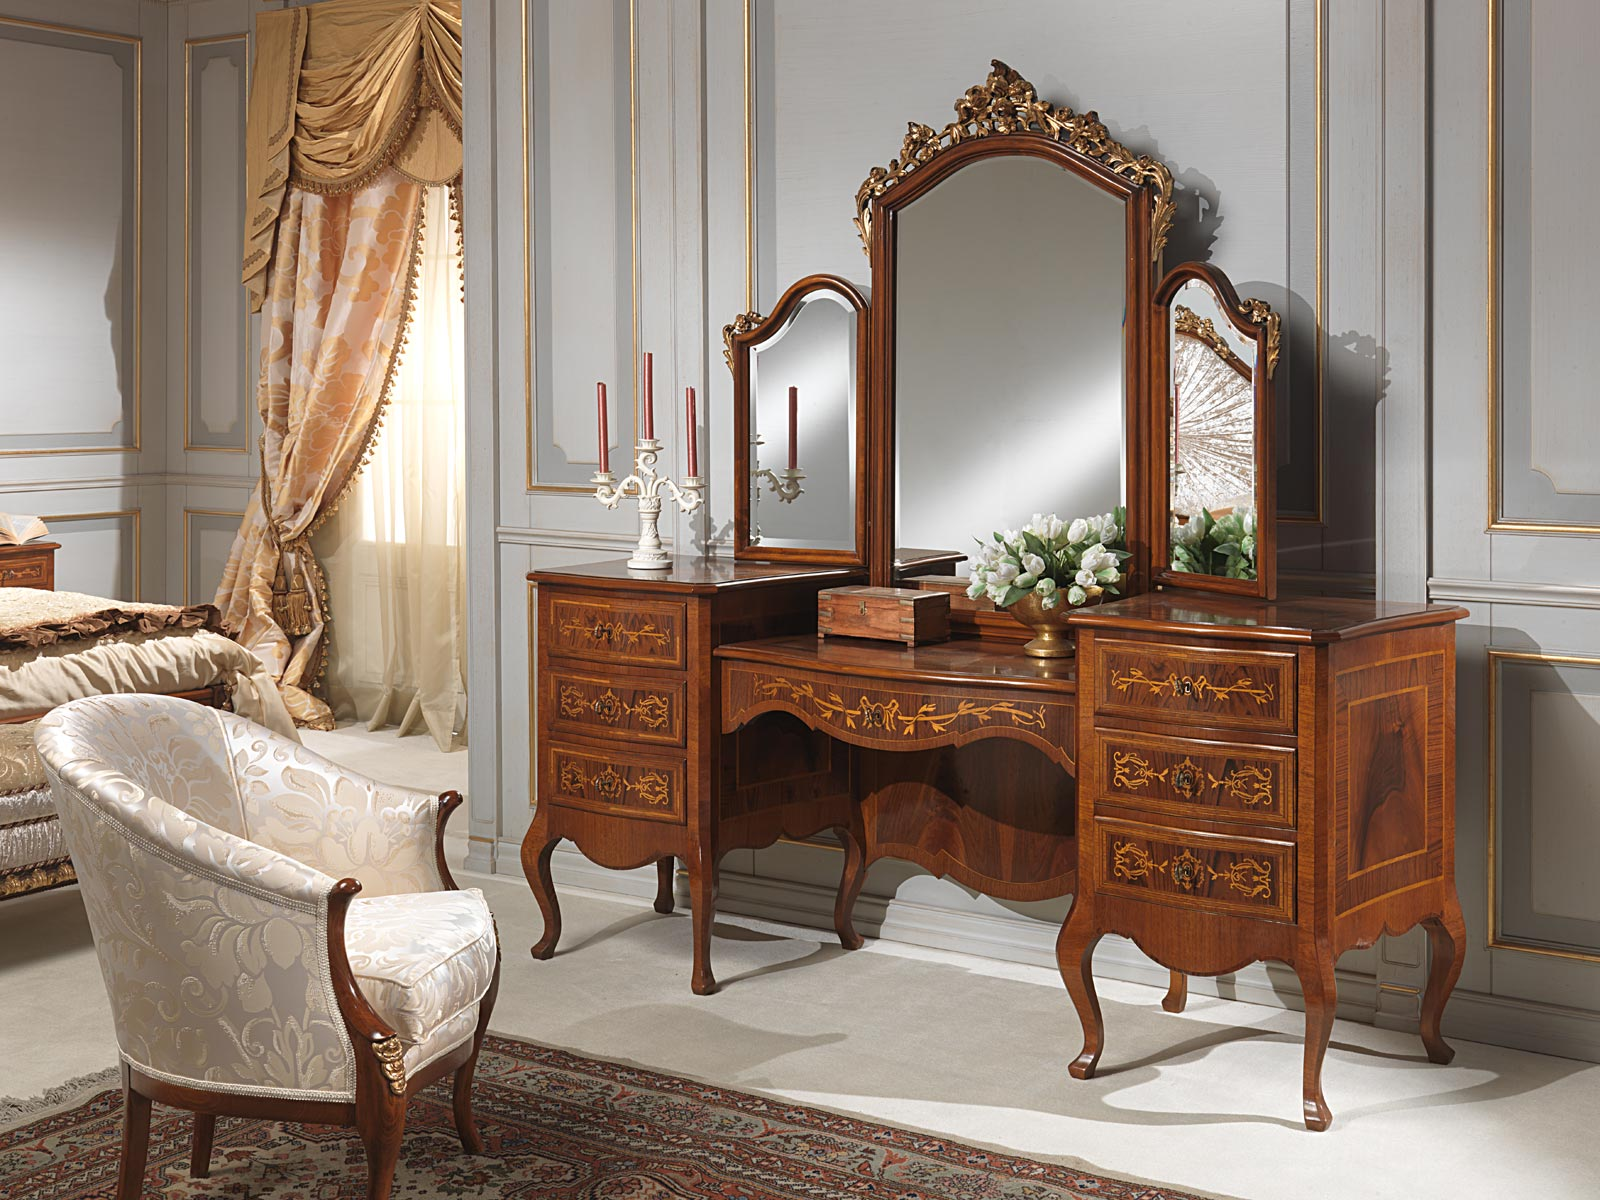 Bedroom furniture dressing table - Classic Louvre Bedroom Dressing Table With Mirror Vimercati Classic Furniture